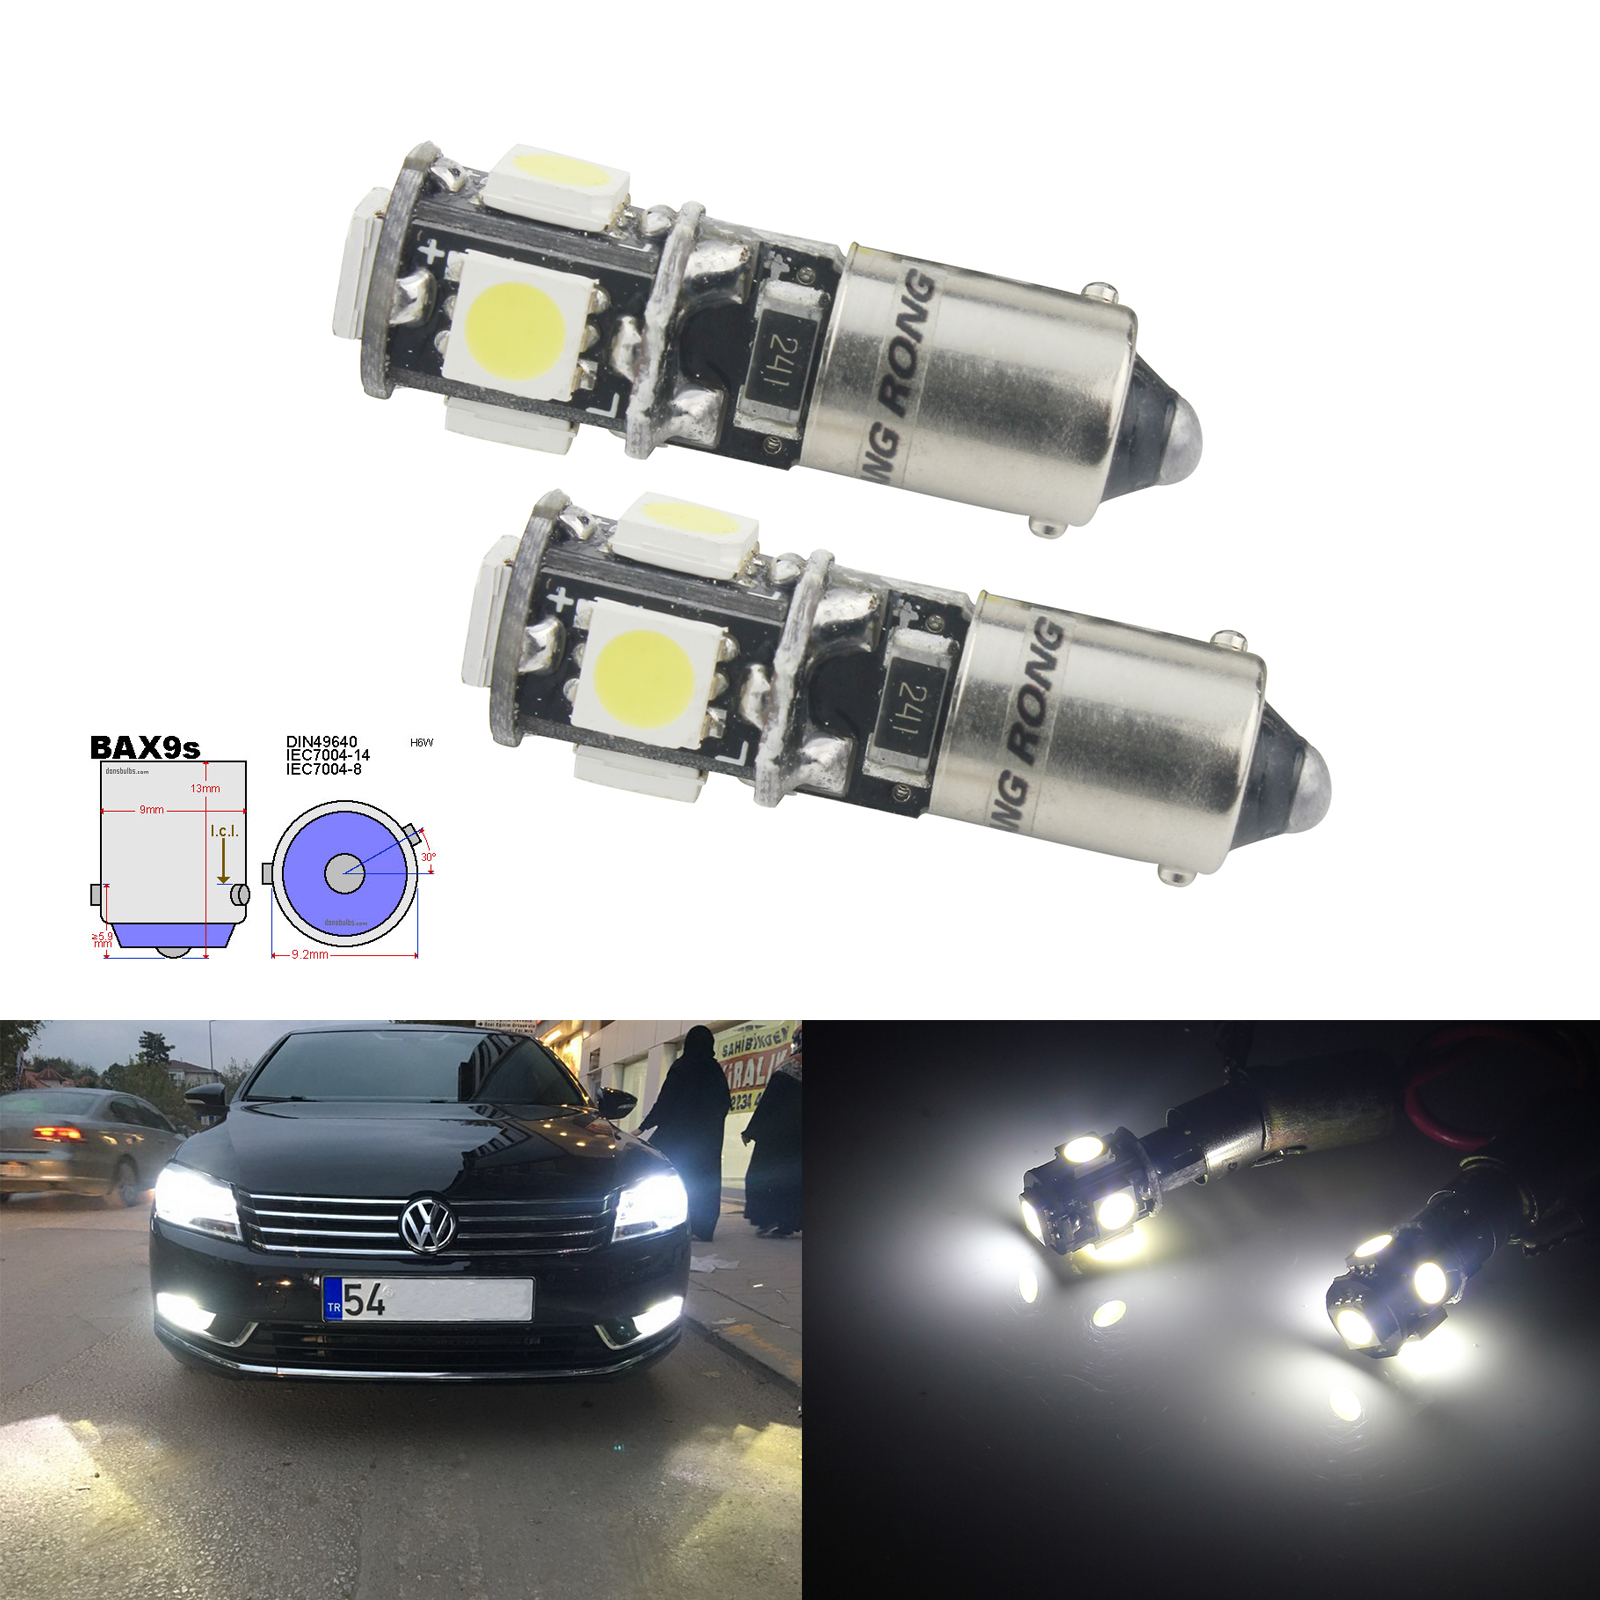 ANGRONG Light-Bulbs H6W Bax9s Parking-Side Xenon White Canbus Error 434 SMD Free-5 2X